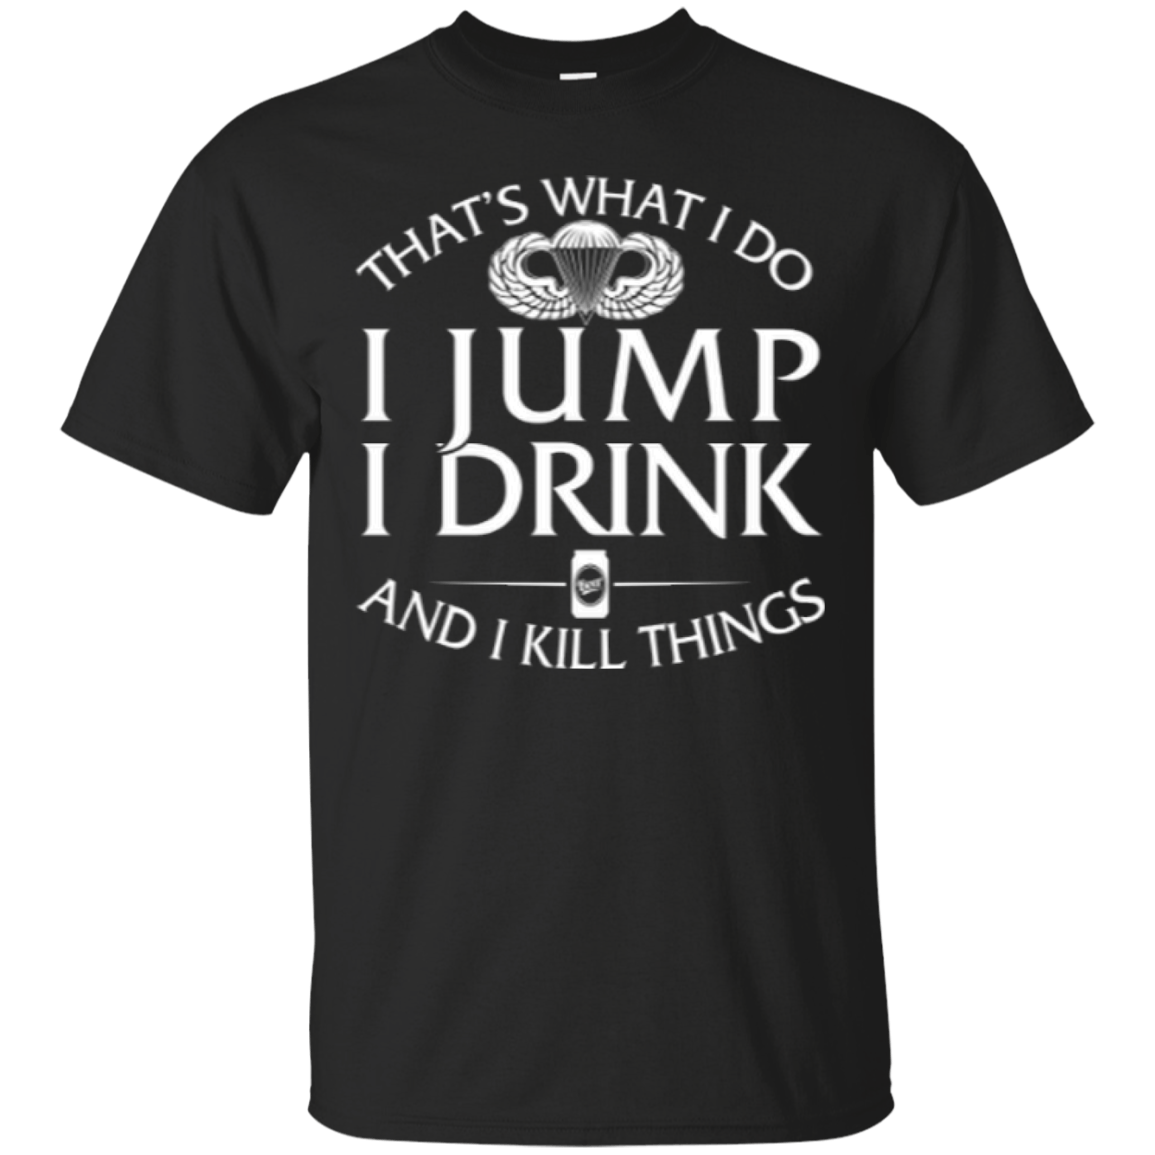 Airborne tee: That's what I do, I jump, I drink and I kill things